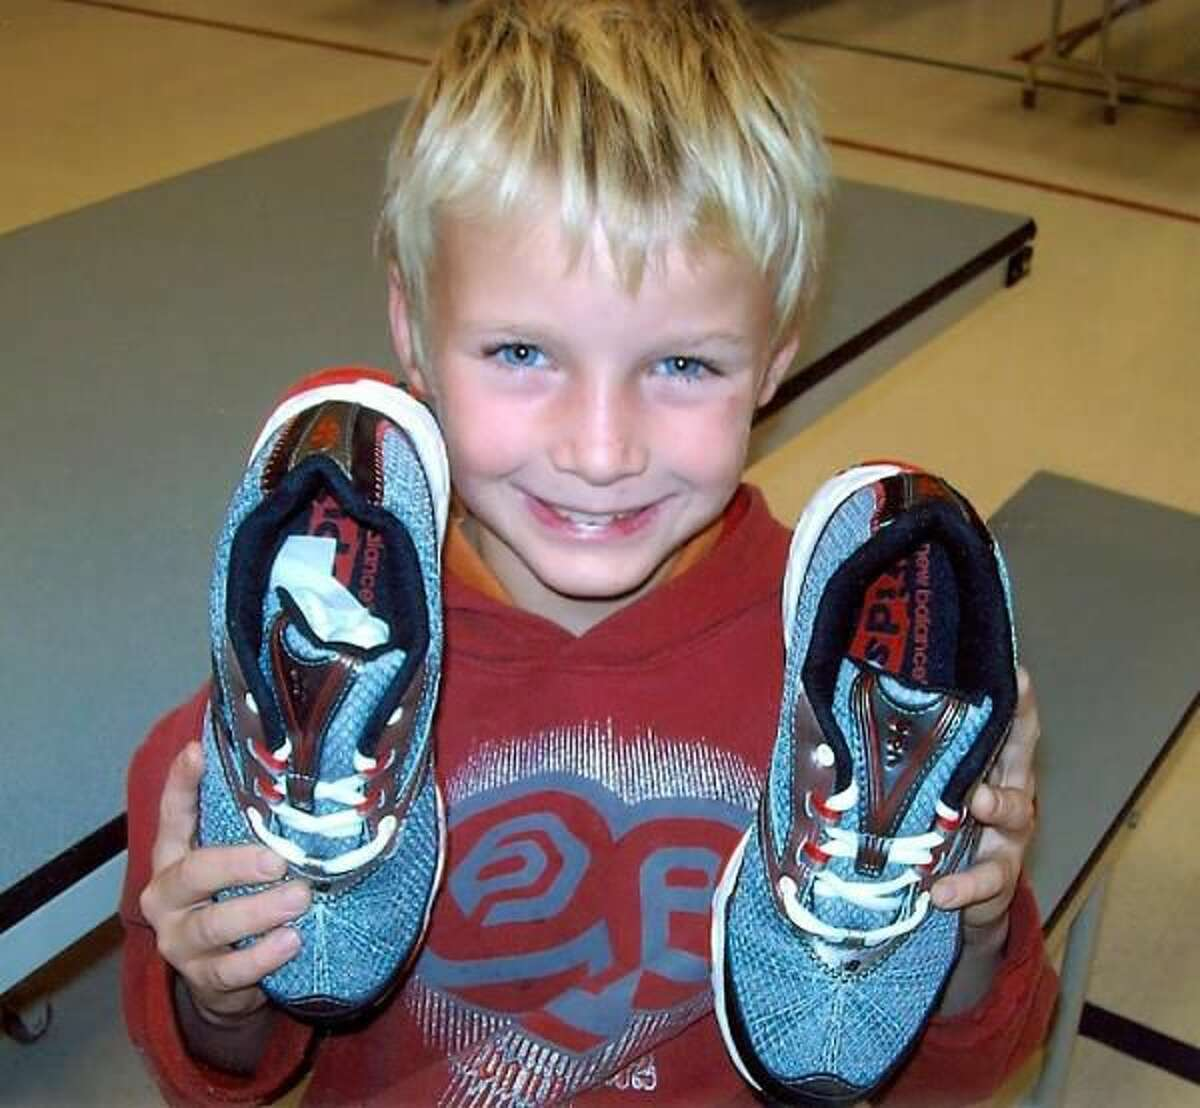 Giving to Shoes That Fit helps students attend school with confidence.